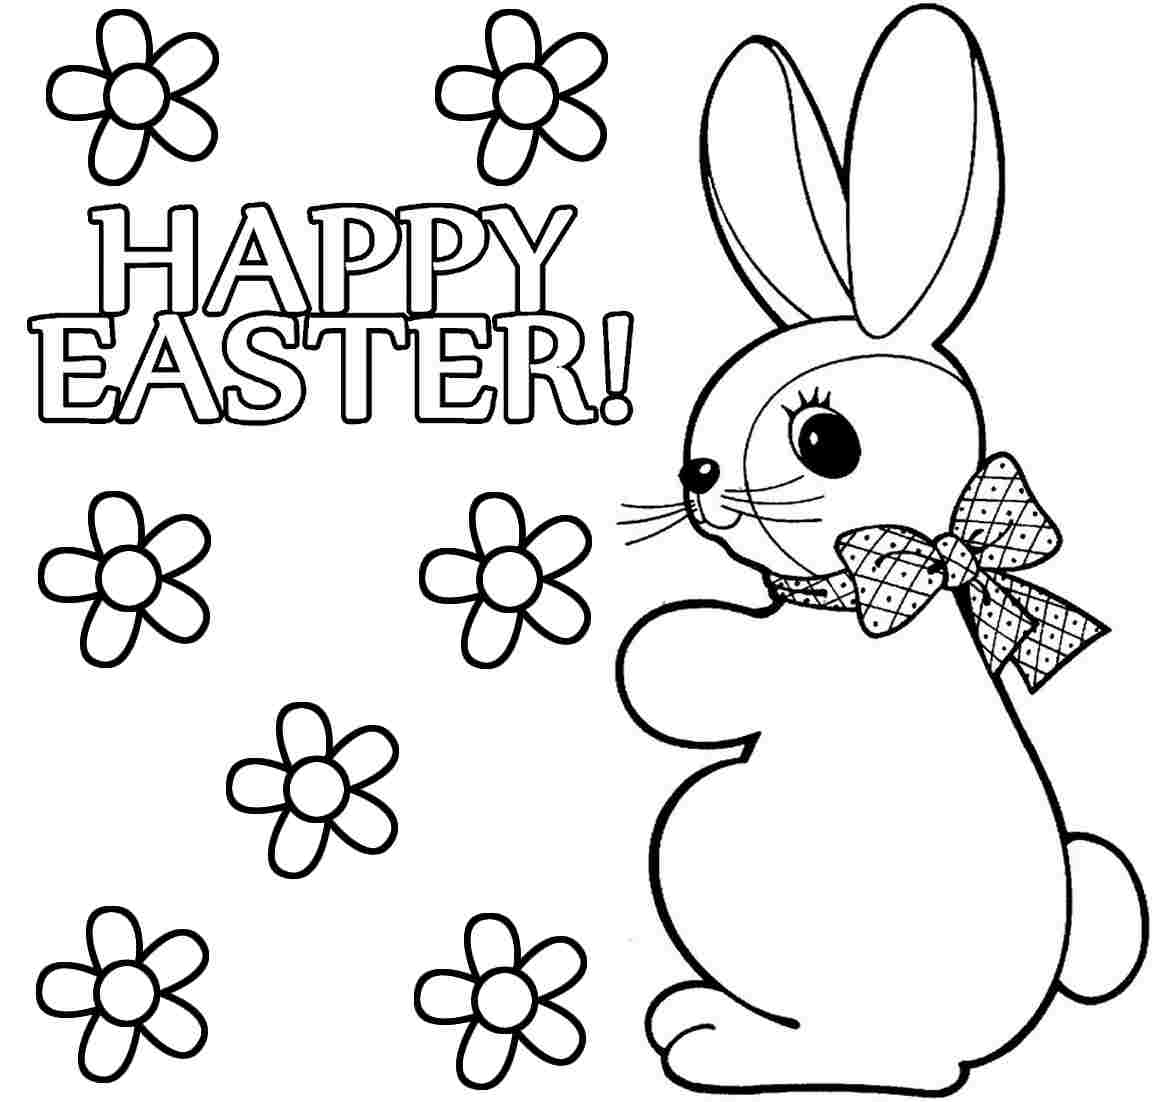 Bunny Coloring Printables On Pages Of Easter Eggs Egg